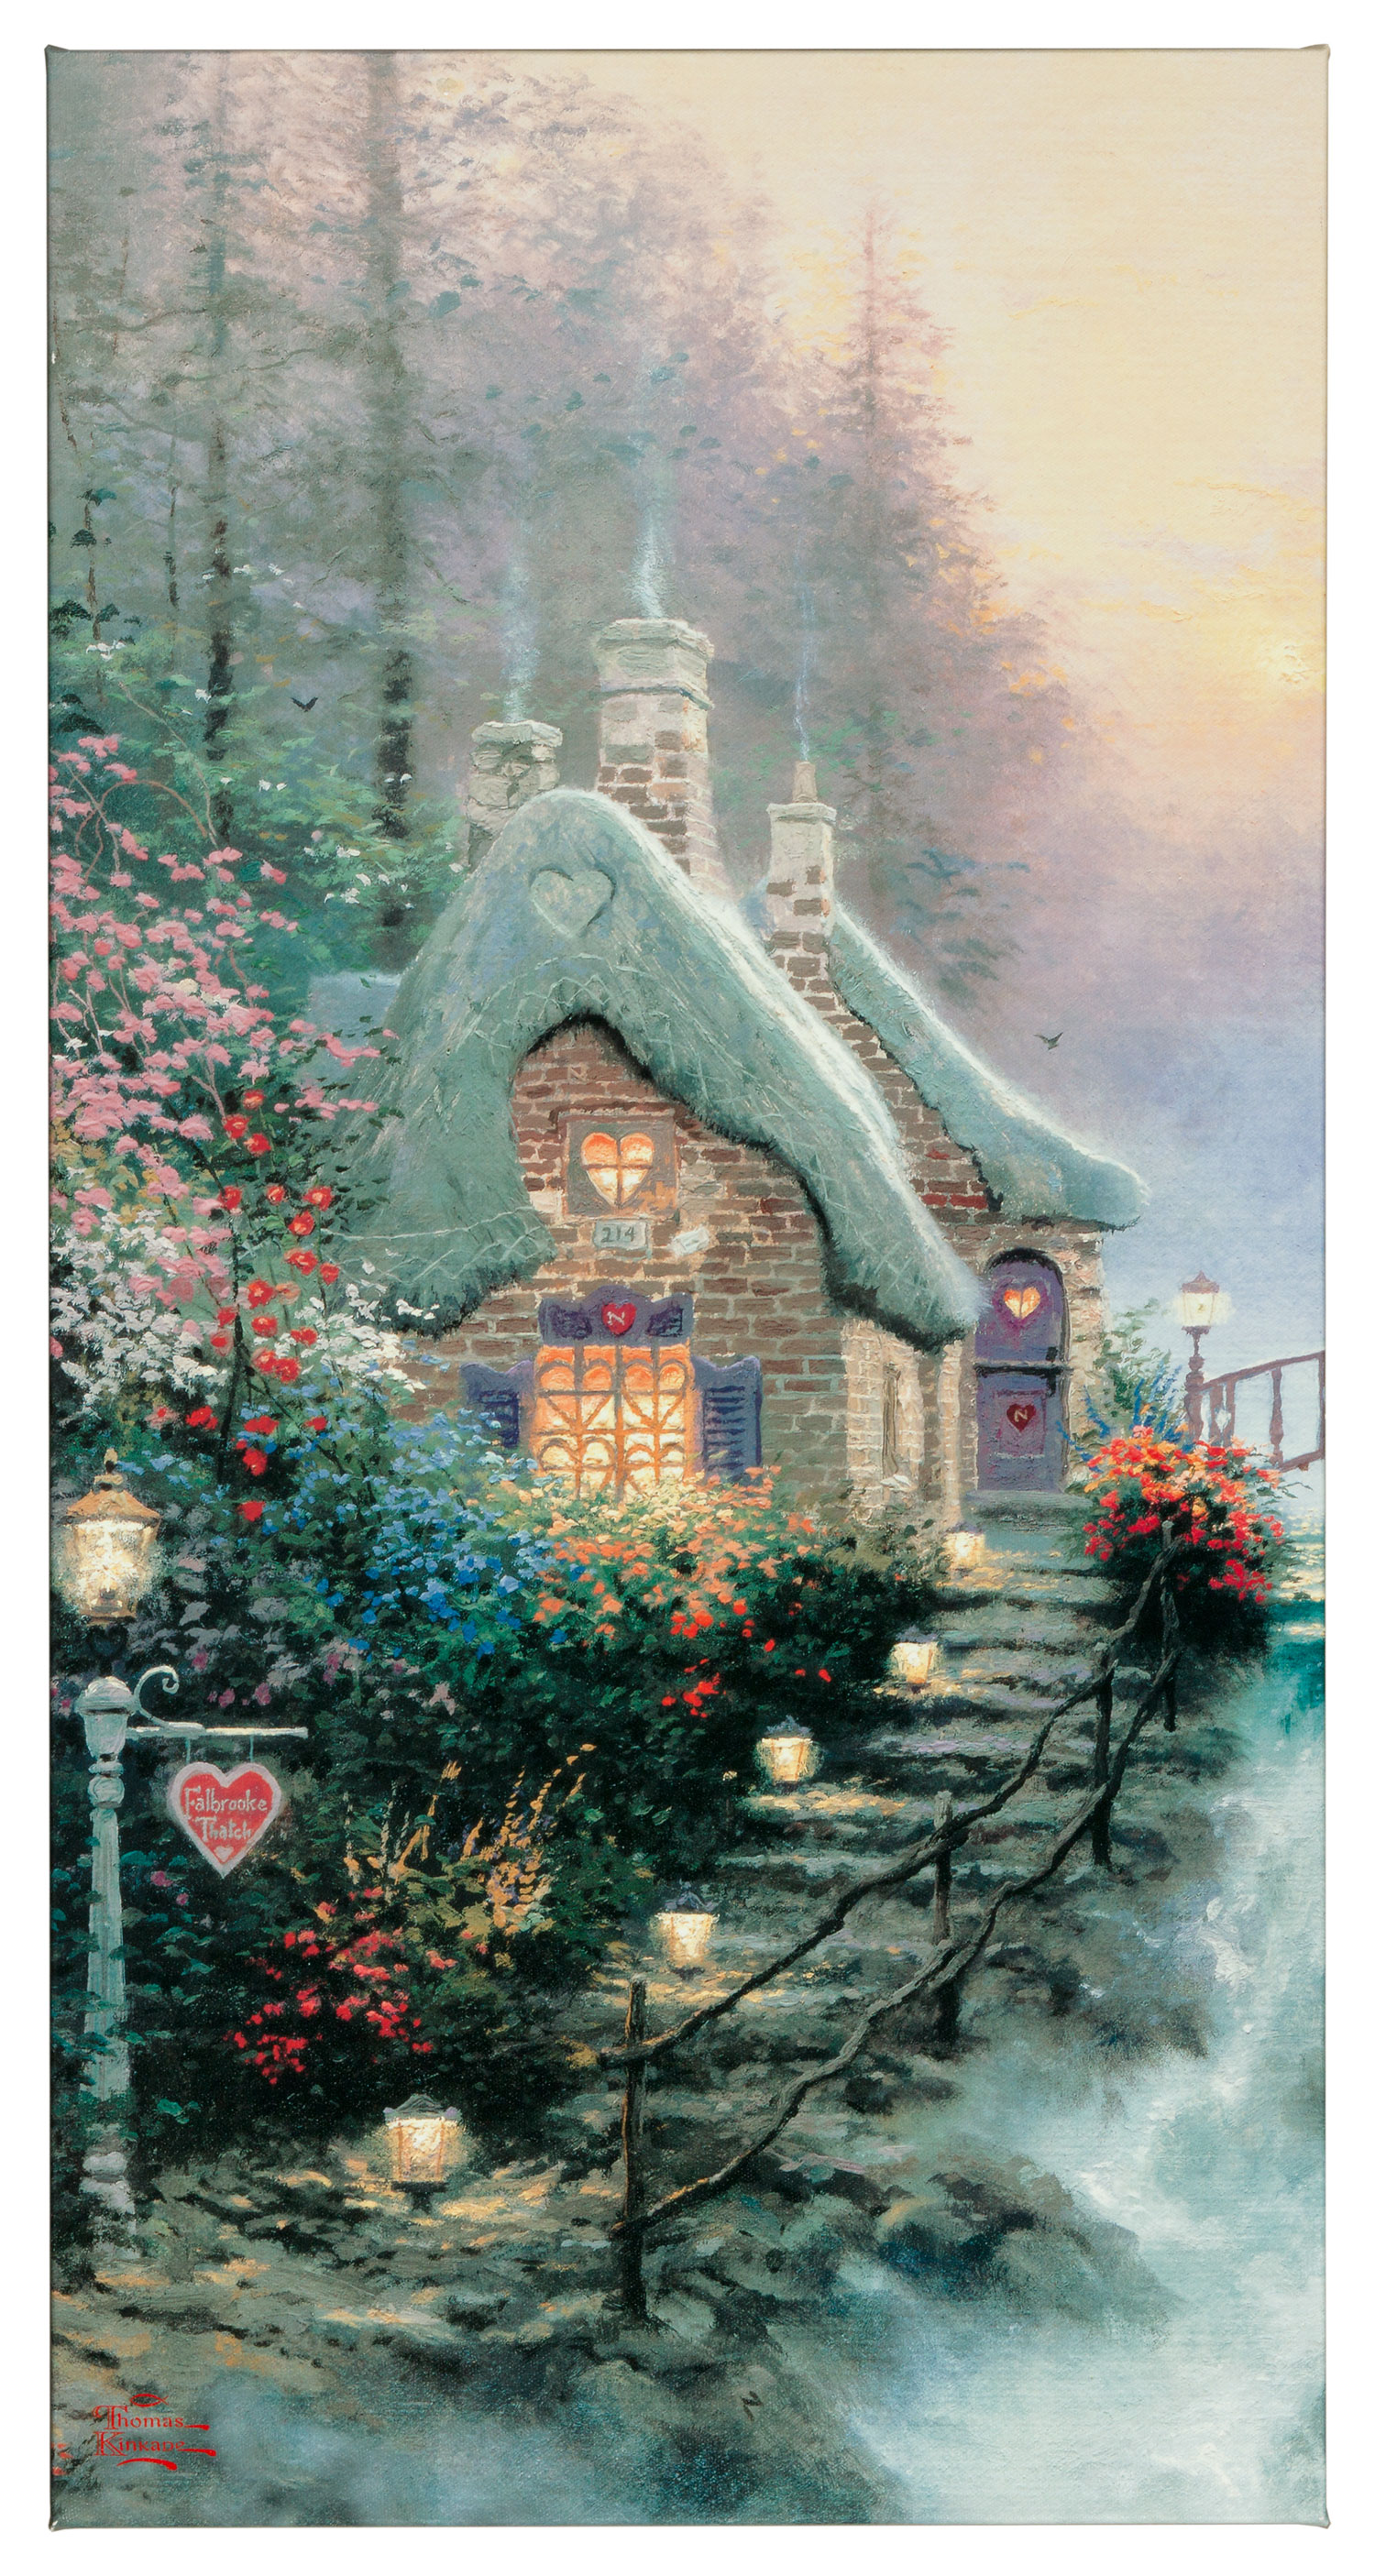 sweetheart cottage ii